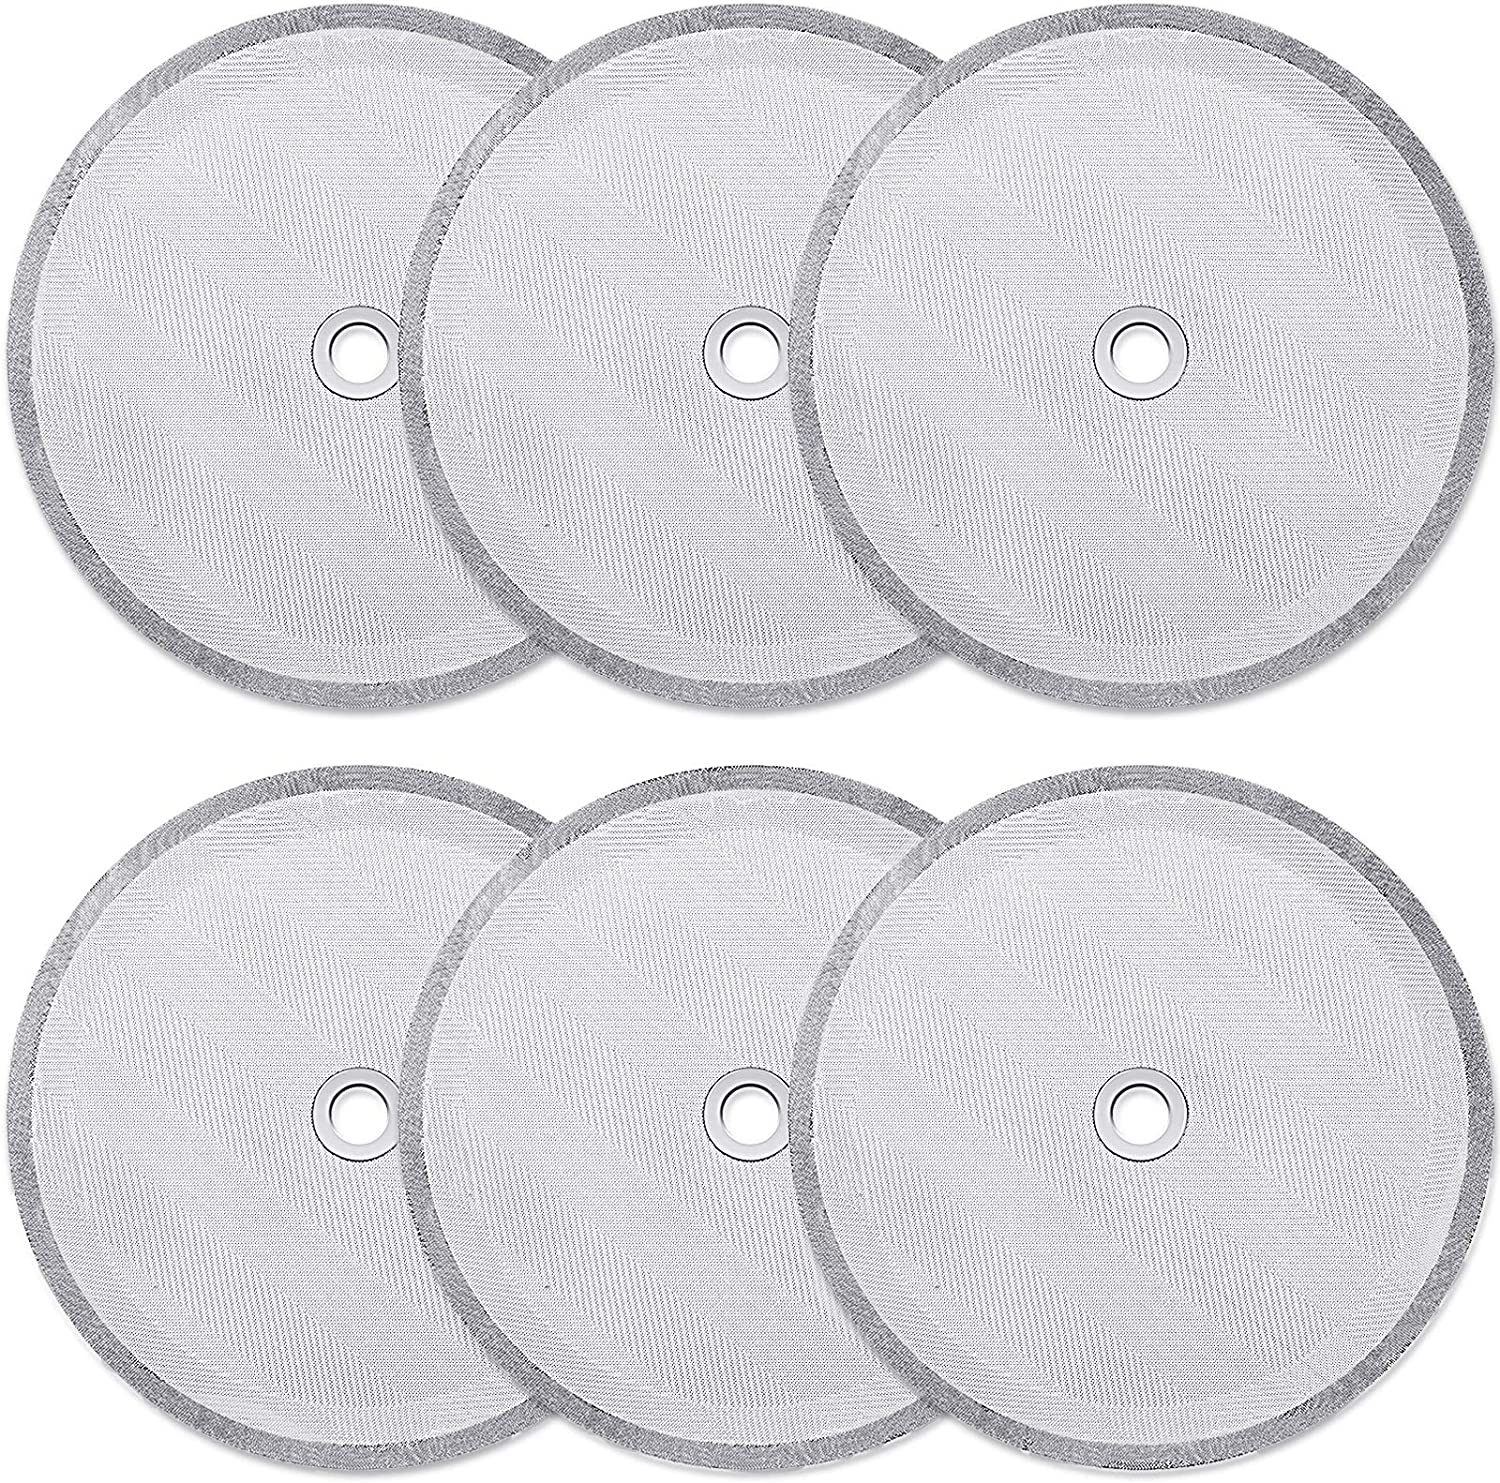 6 Pieces Fort Worth Mall French security Press Mesh Replacement Replaceme Filters